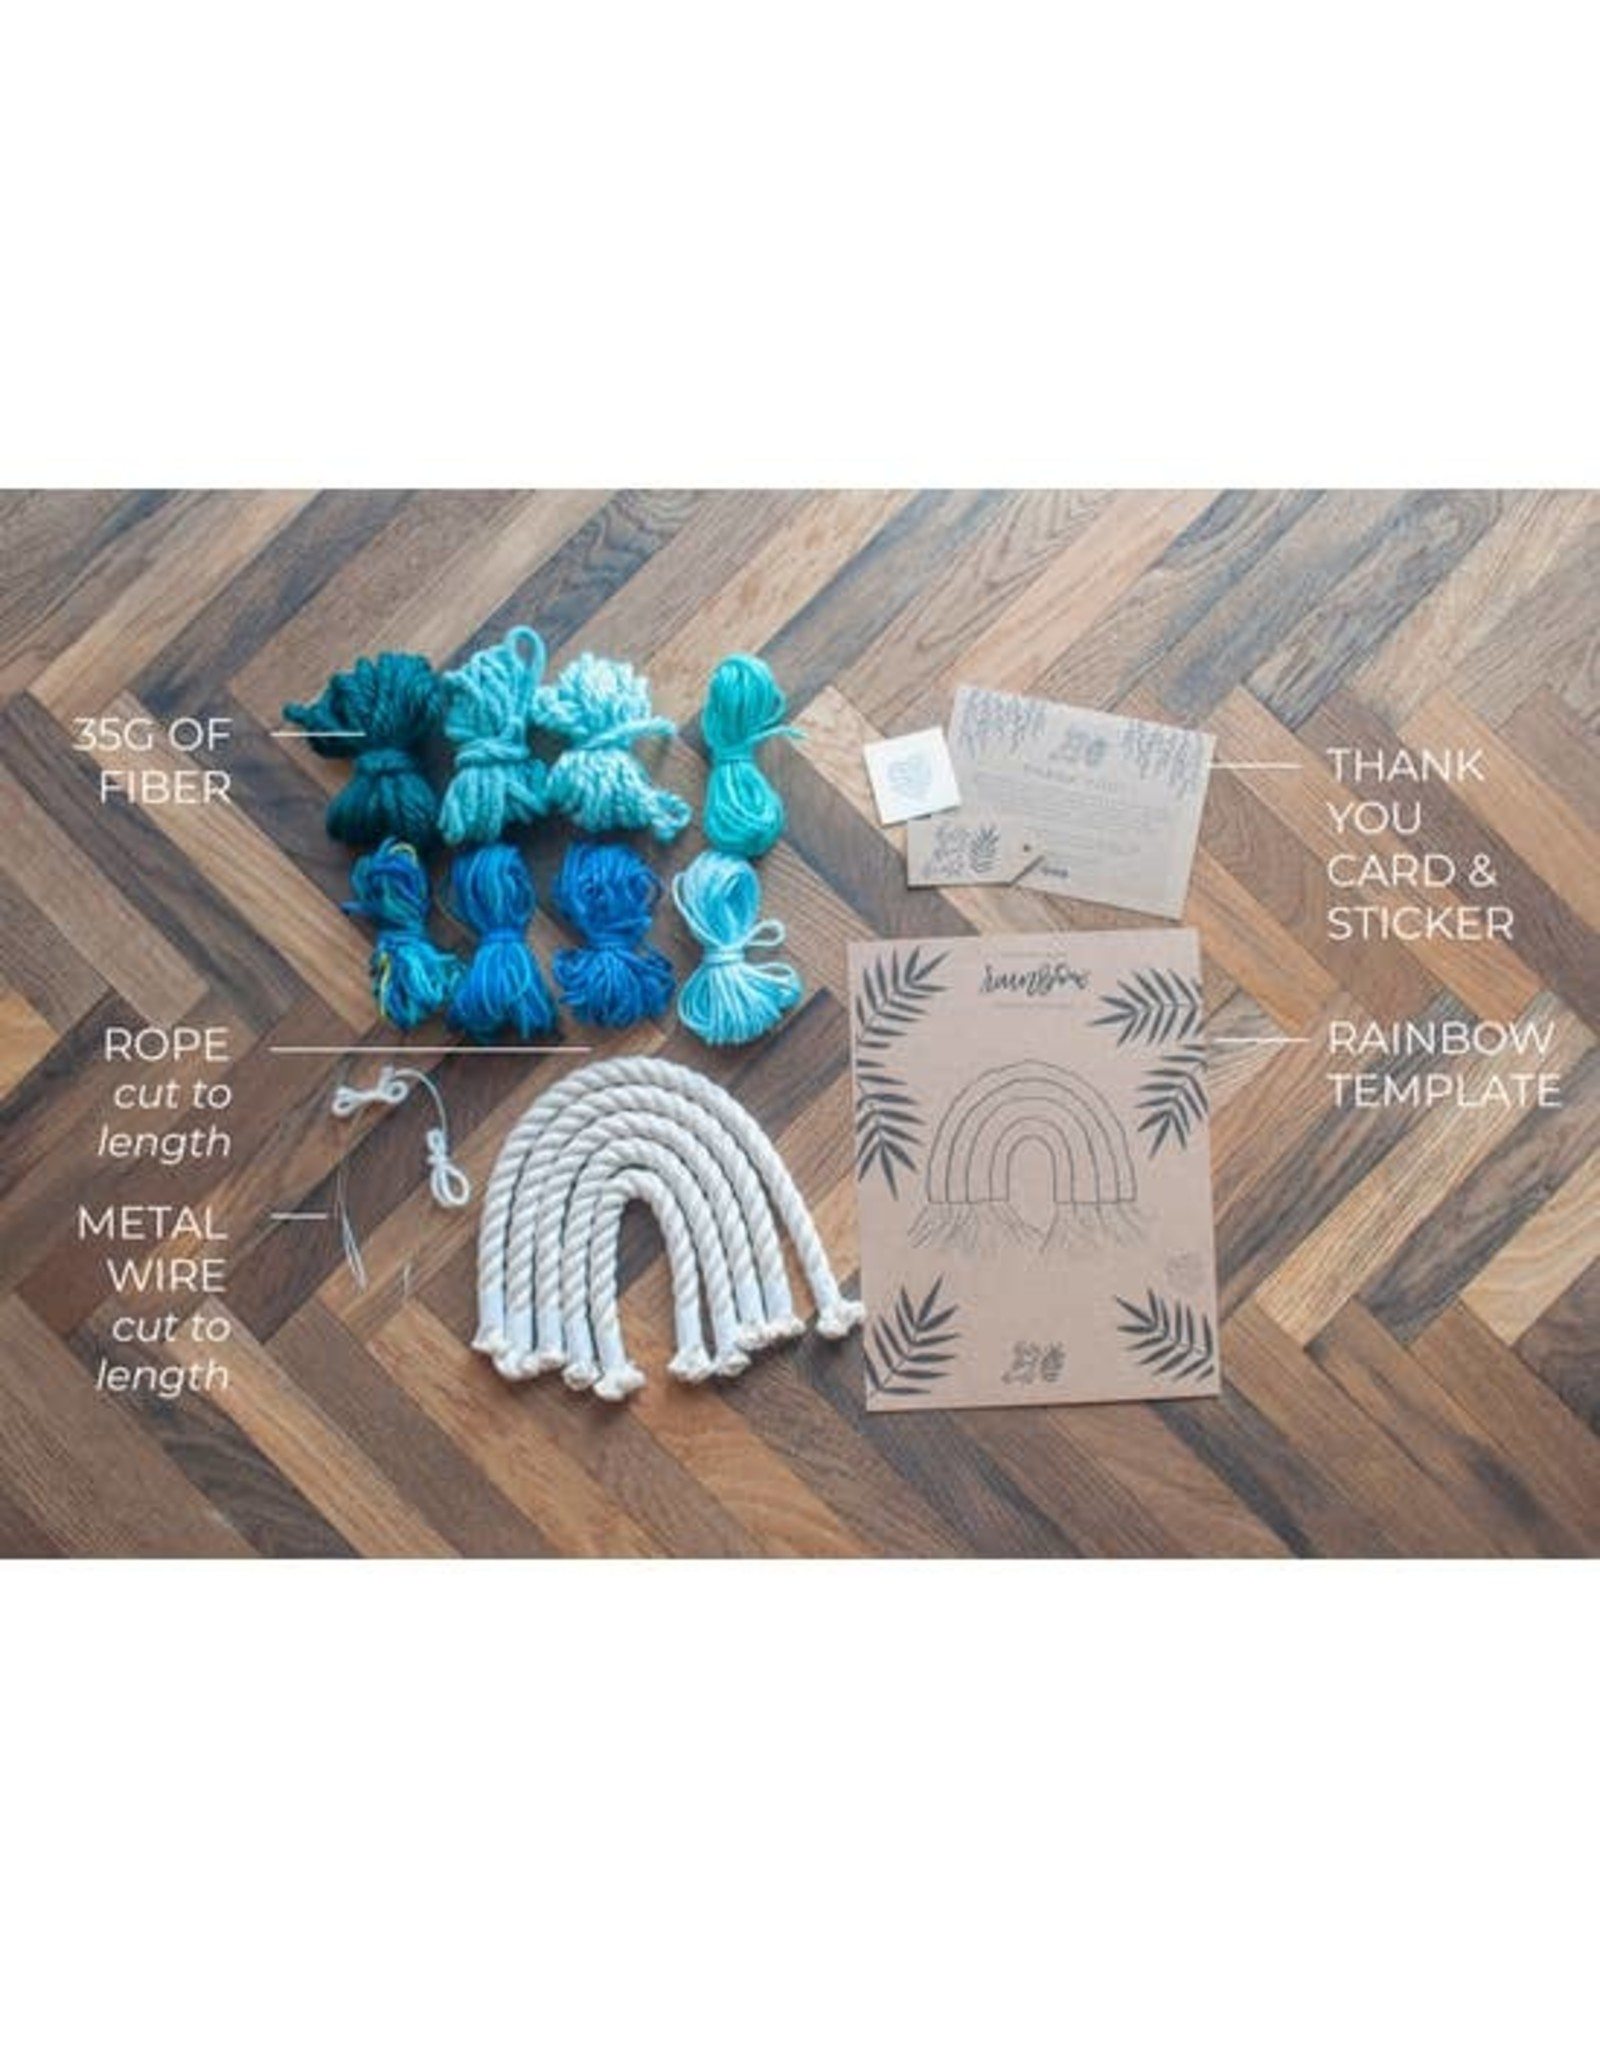 Hello Dear Heart Macrame Rainbow Kits for Kids: Green & Blue